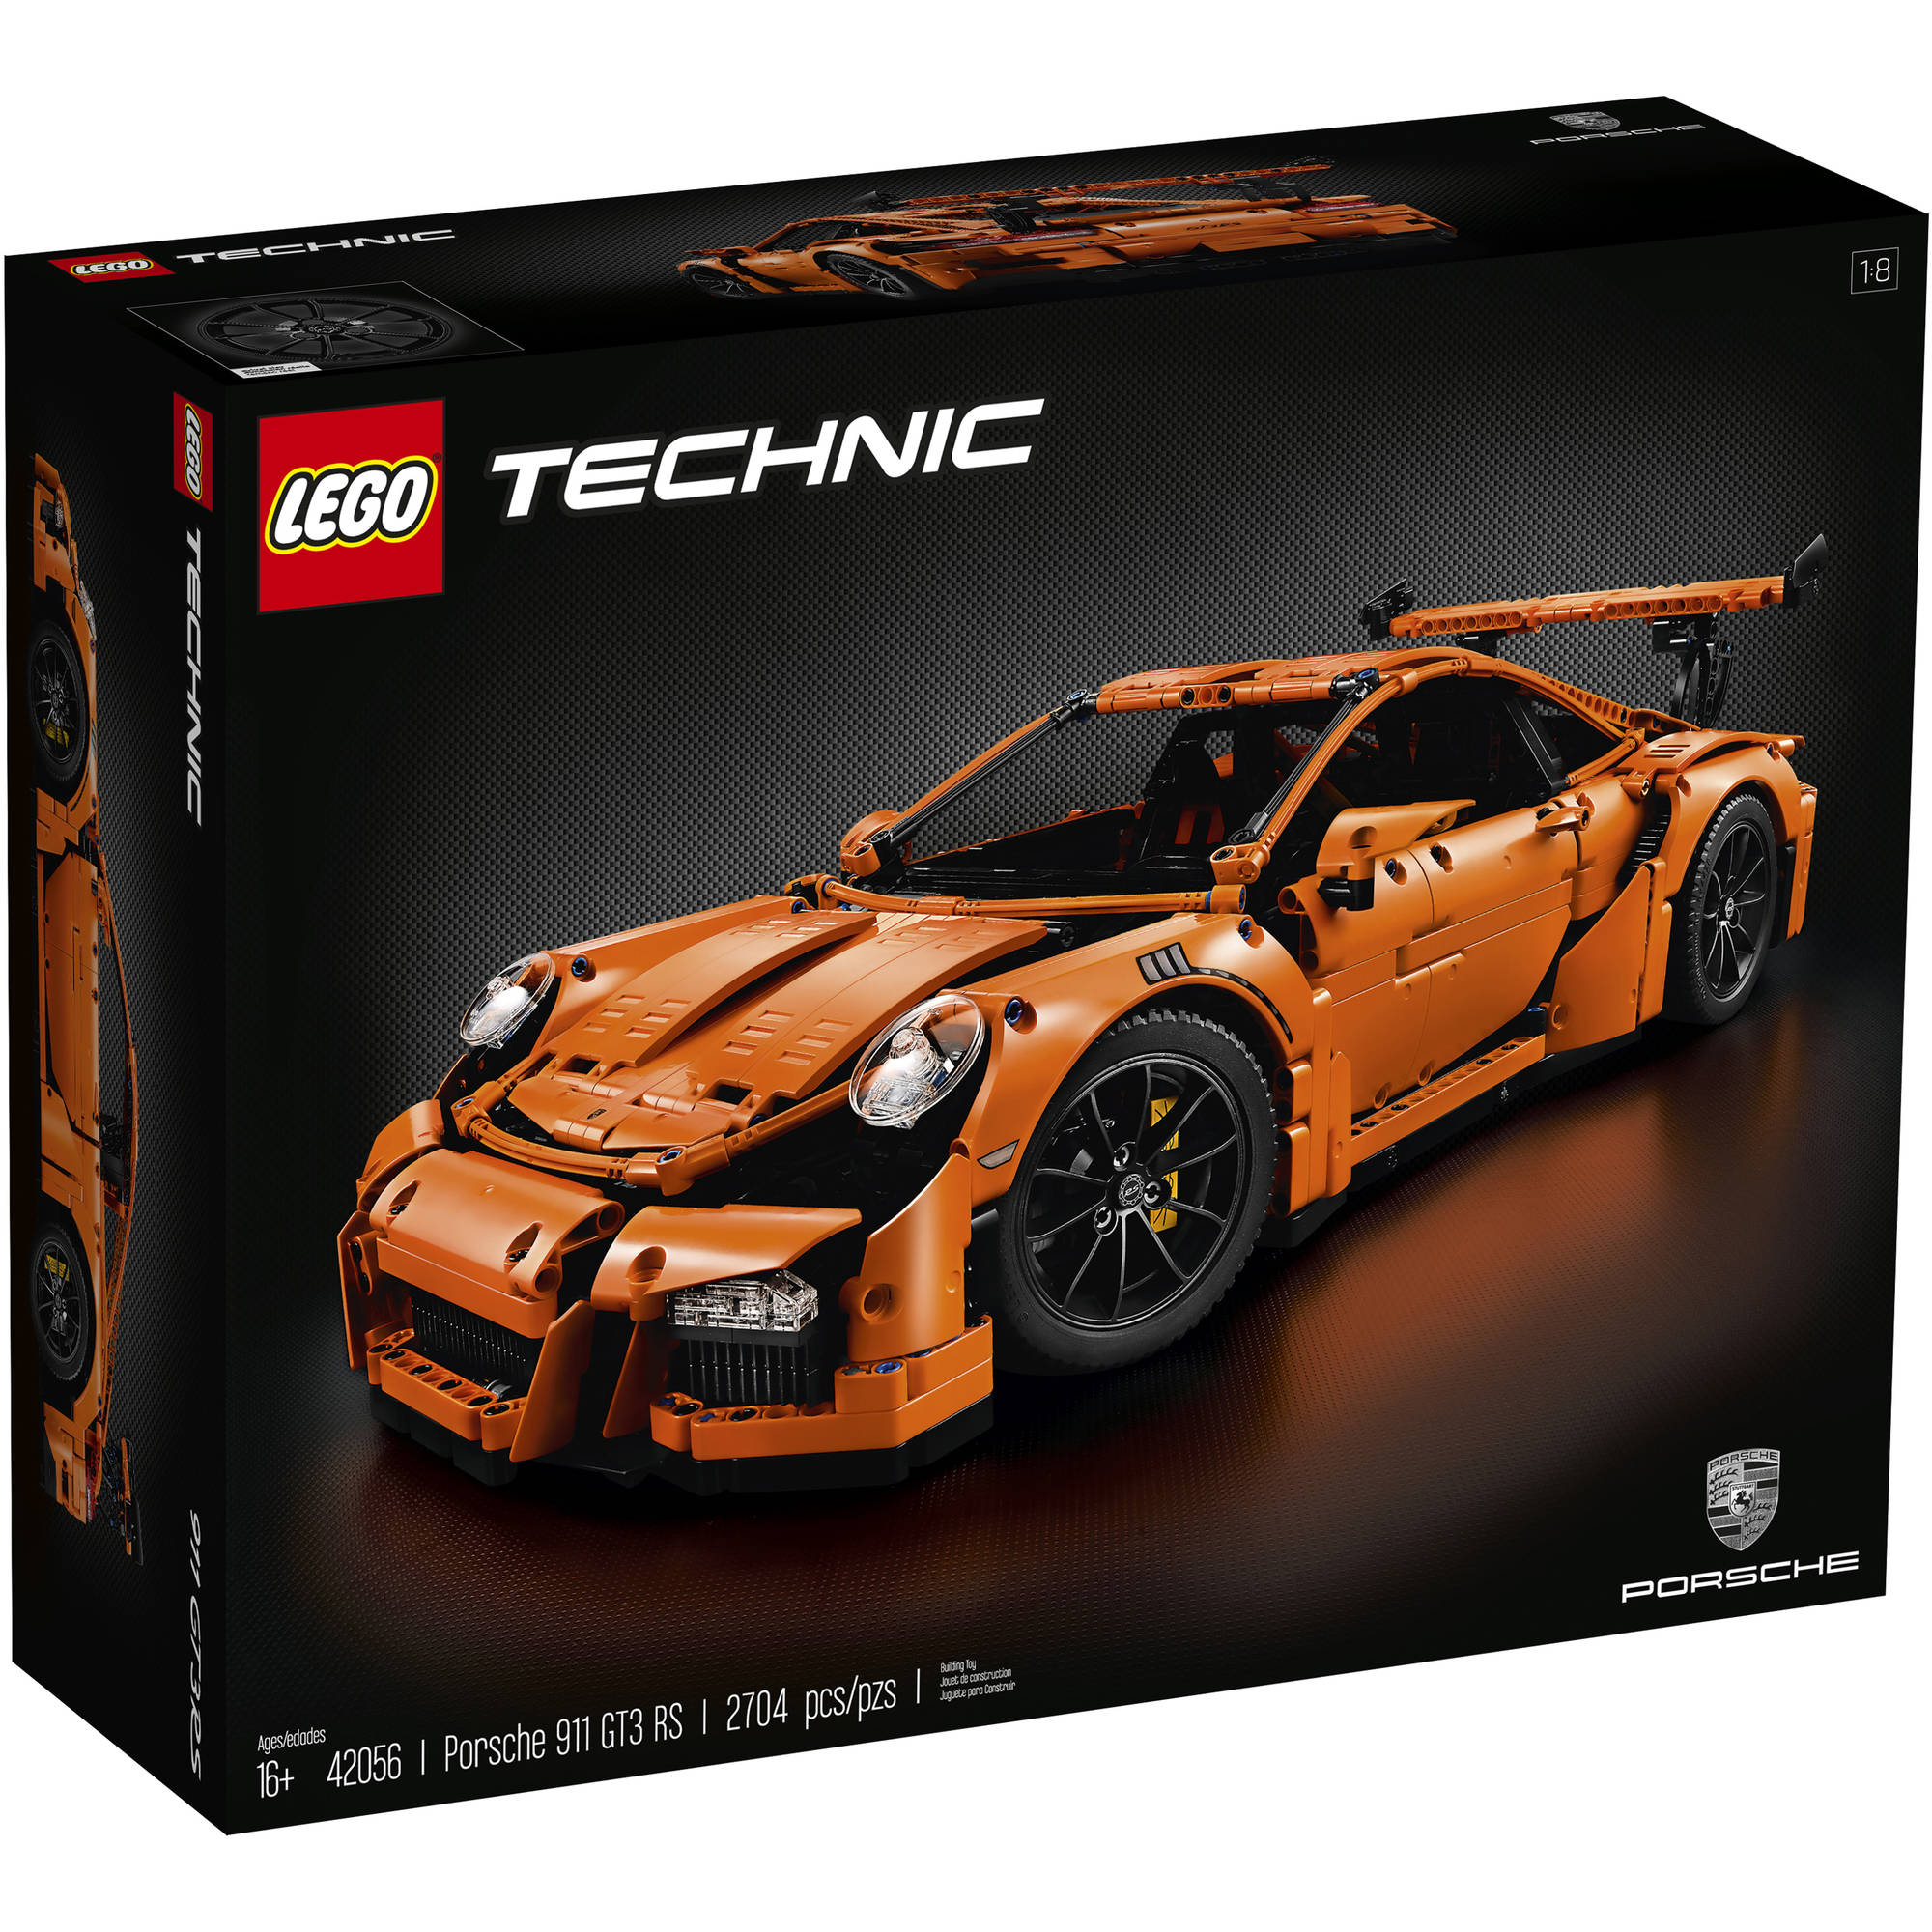 Lego Technic Porsche 911 GT3 RS, 42056 by LEGO Systems, Inc.